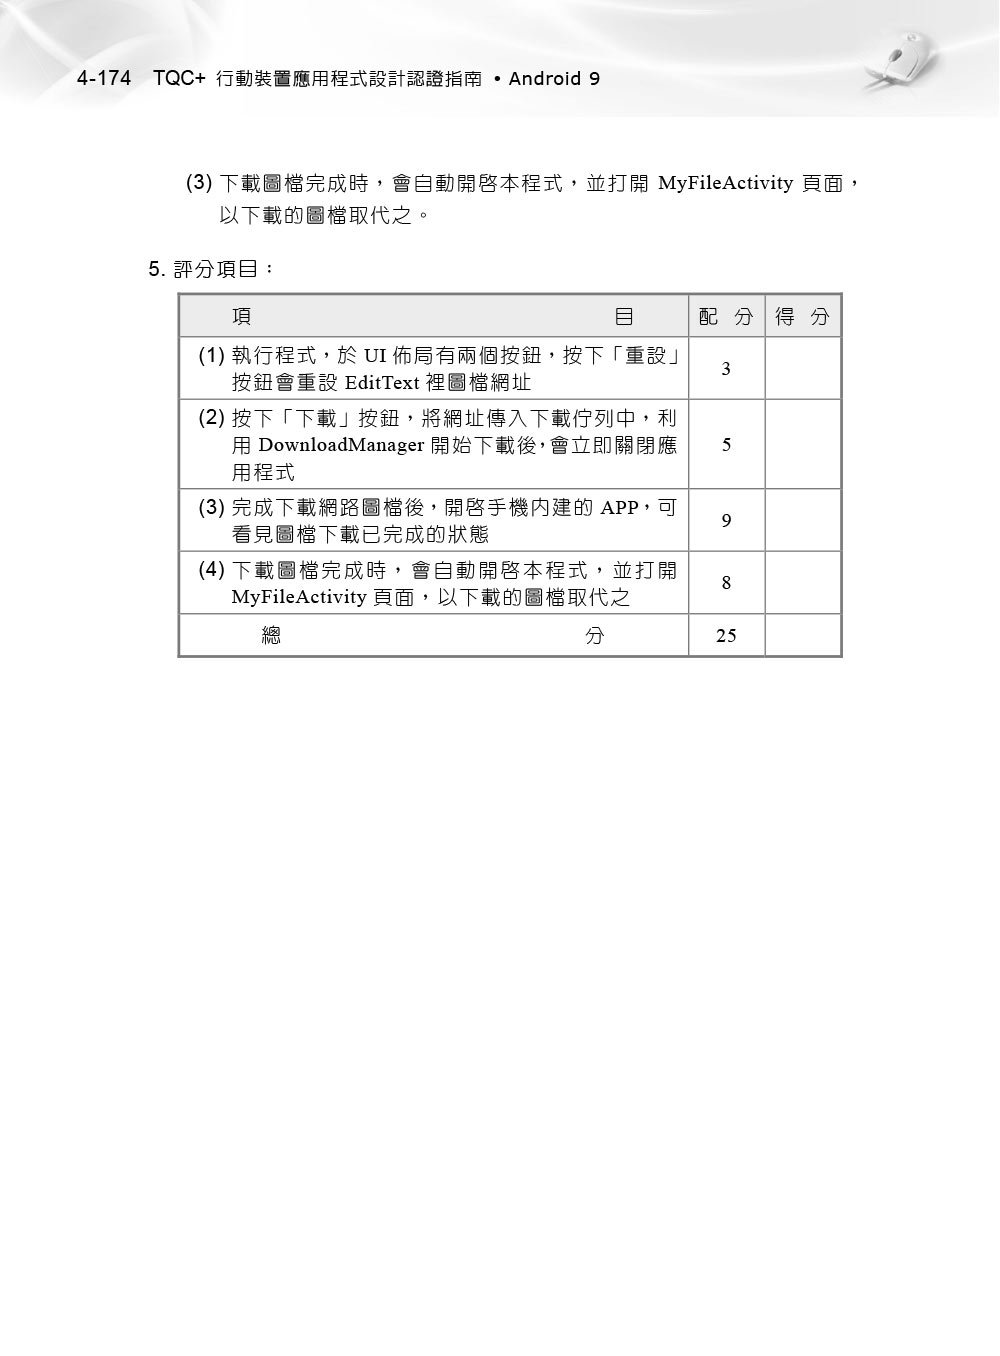 TQC+ 行動裝置應用程式設計認證指南 Android 9-preview-9